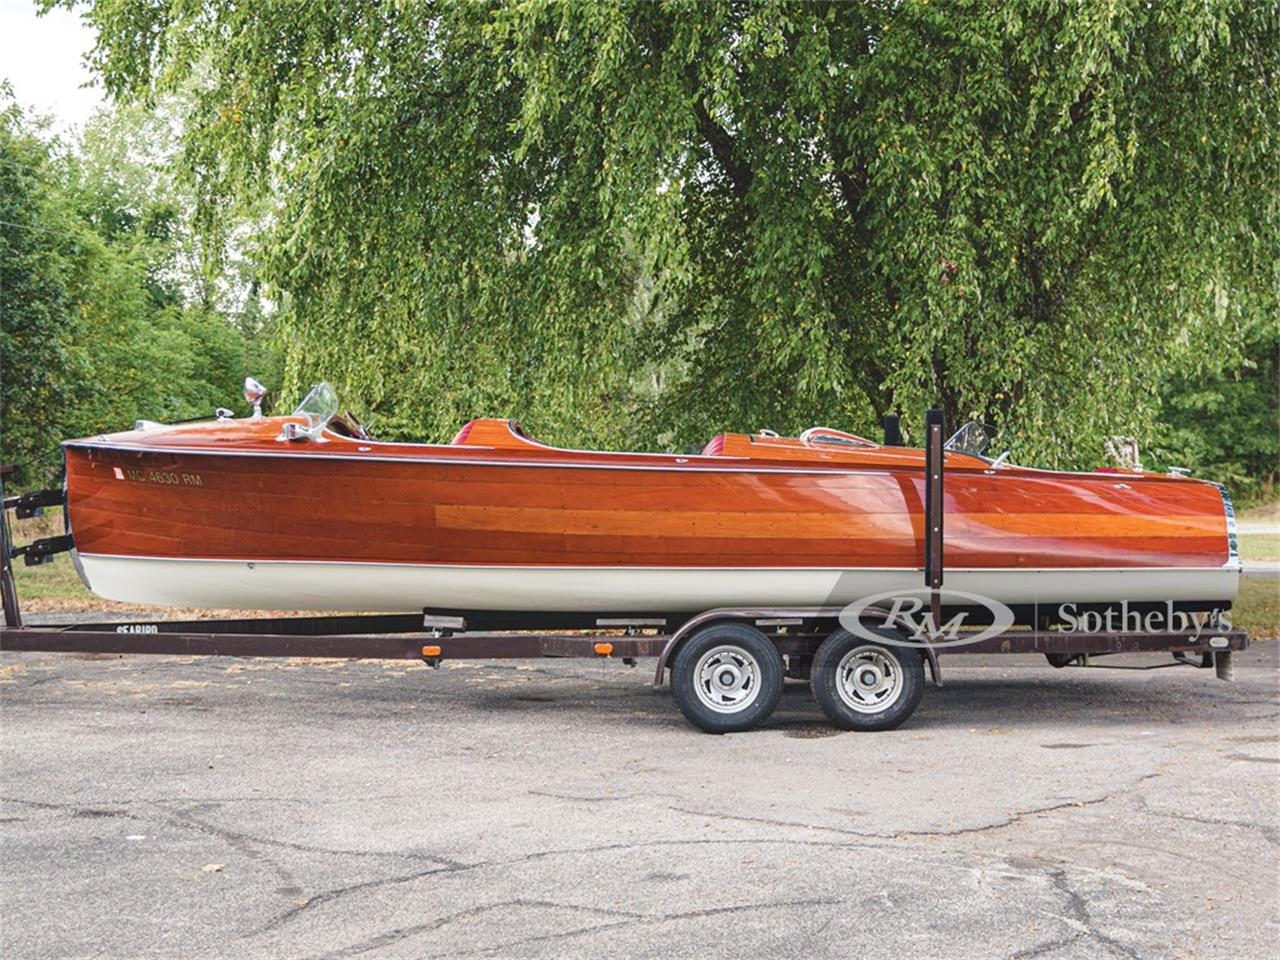 1936 Port Carling Sea Bird (CC-1336373) for sale in Elkhart, Indiana